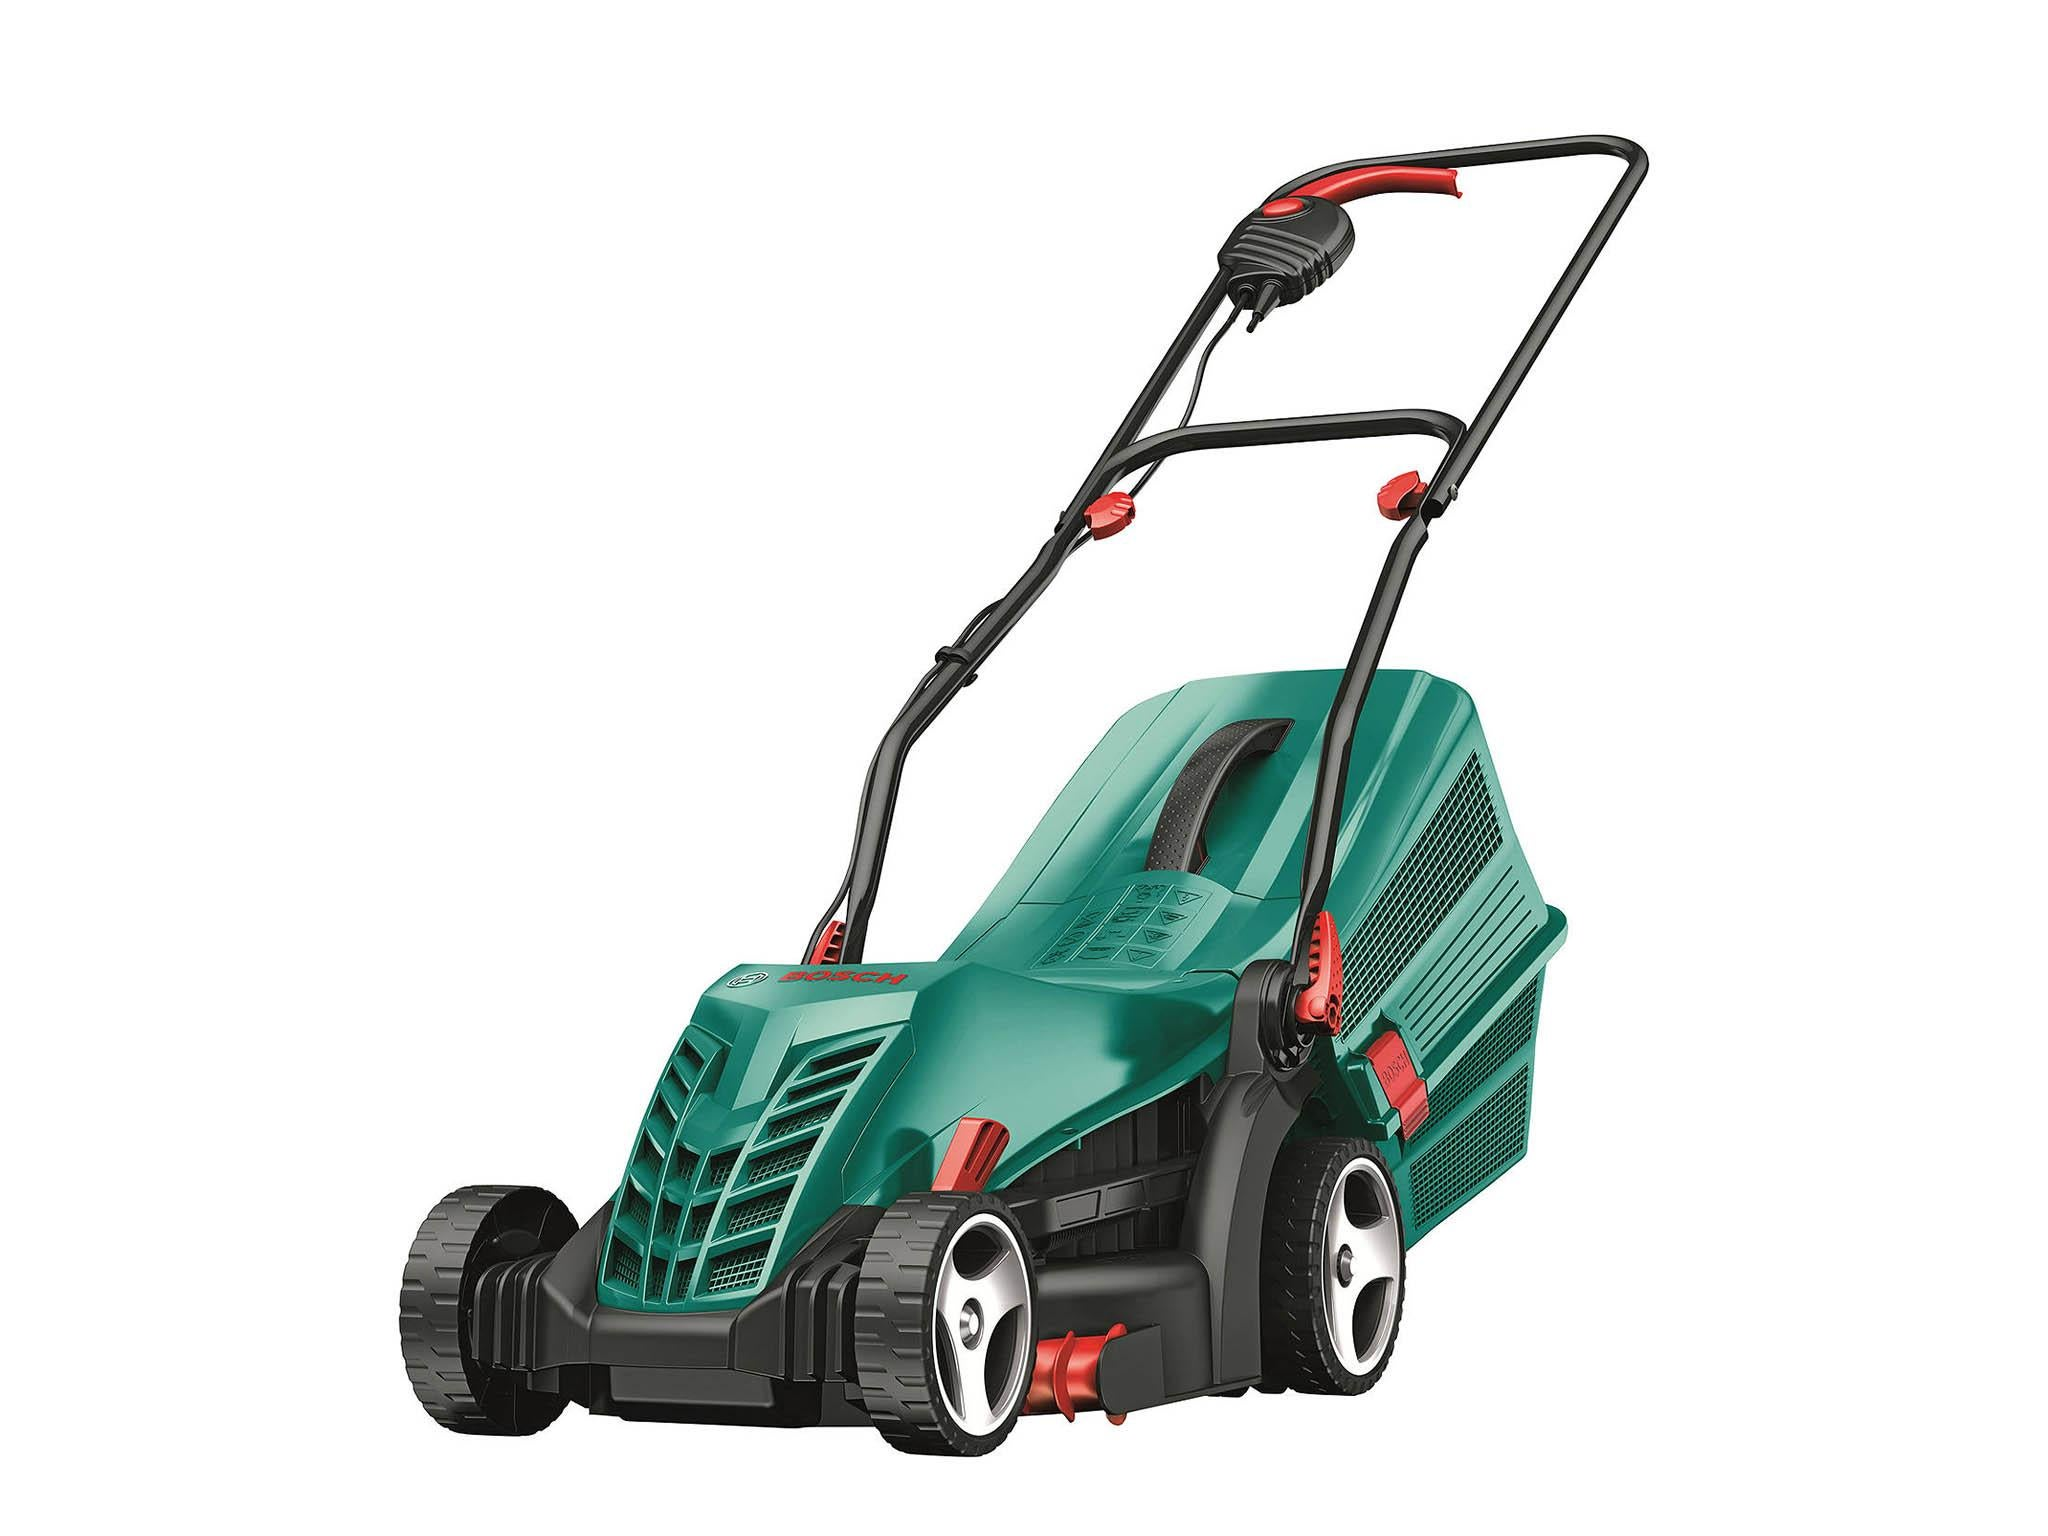 Best lawn mower for your garden: Cordless, petrol, rotary or